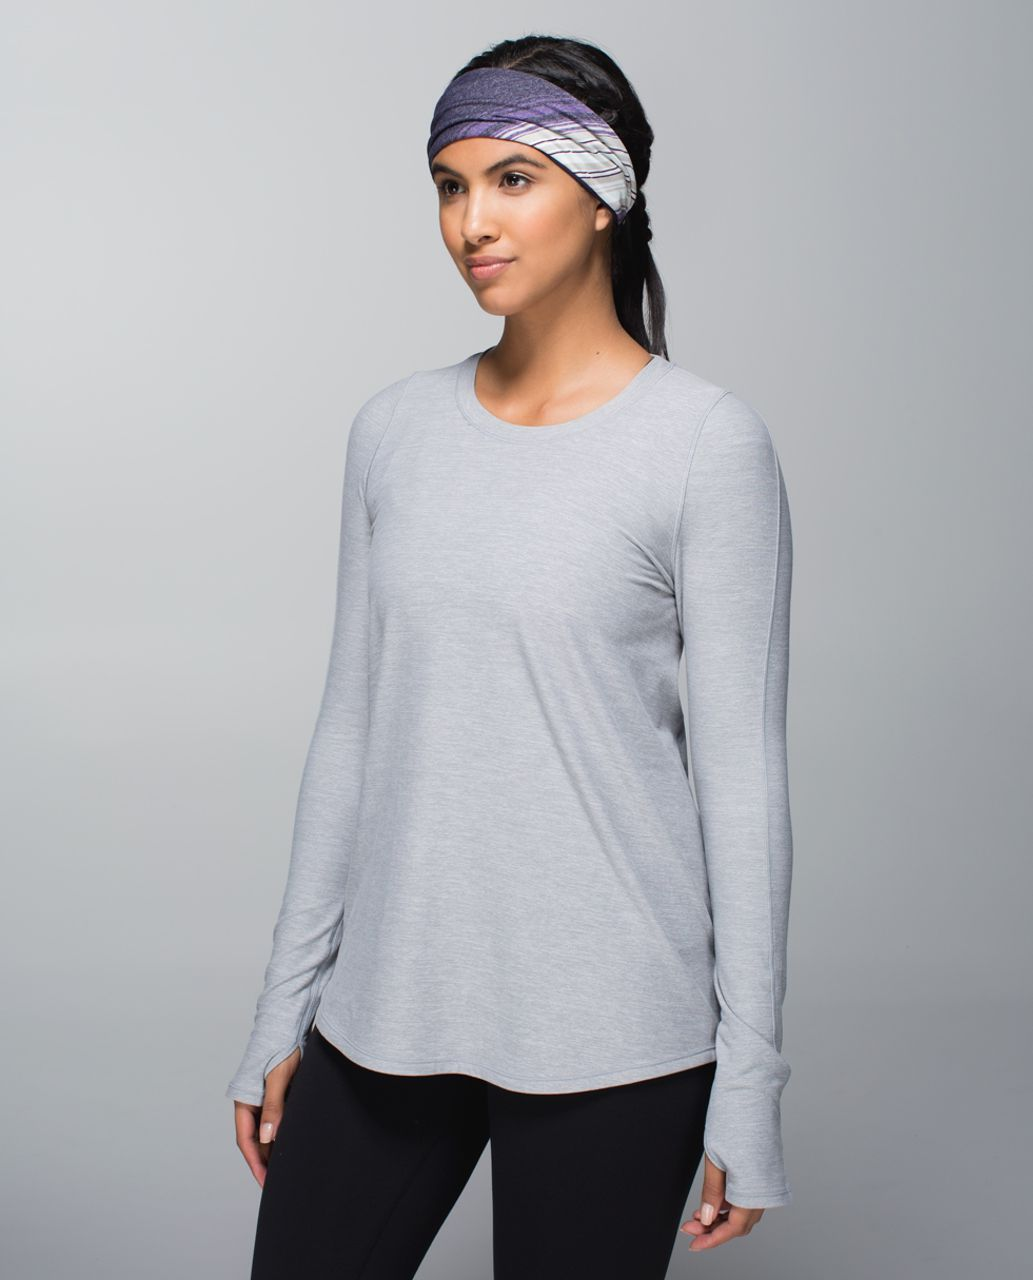 Lululemon Bang Buster Headband *Reversible - Osaka Stripe Heathered Black Grape / Black Grape